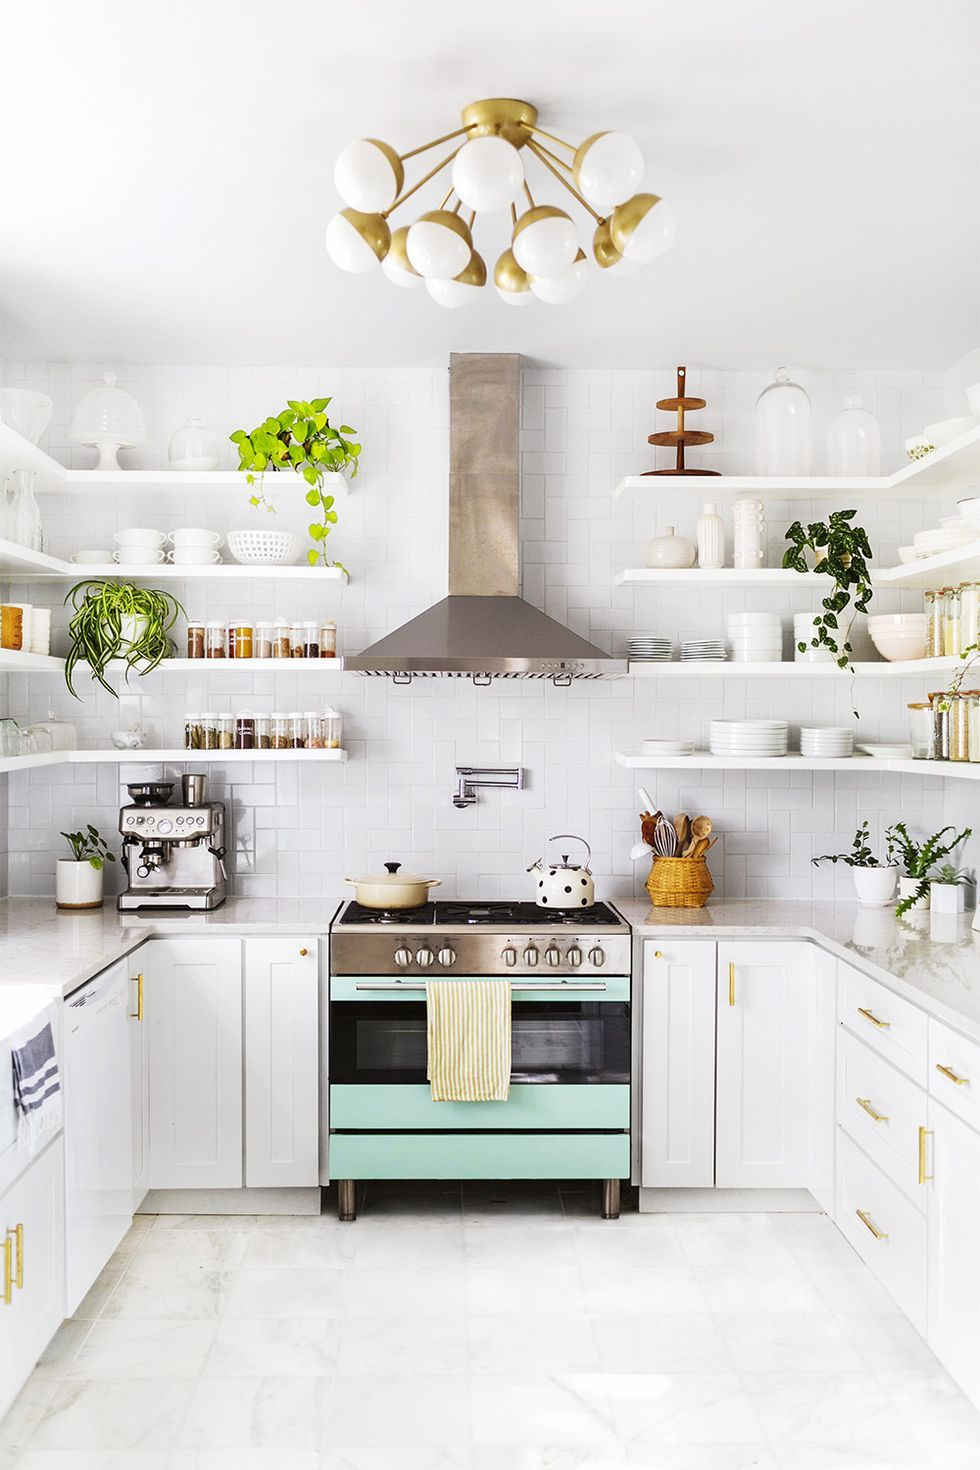 Here Is Where To Shop Vintage Lighting For Small Rooms Of The House 💡 vintage lighting Here Is Where To Shop Vintage Lighting For Small Rooms Of The House 💡 small kitchen idess 1572363904